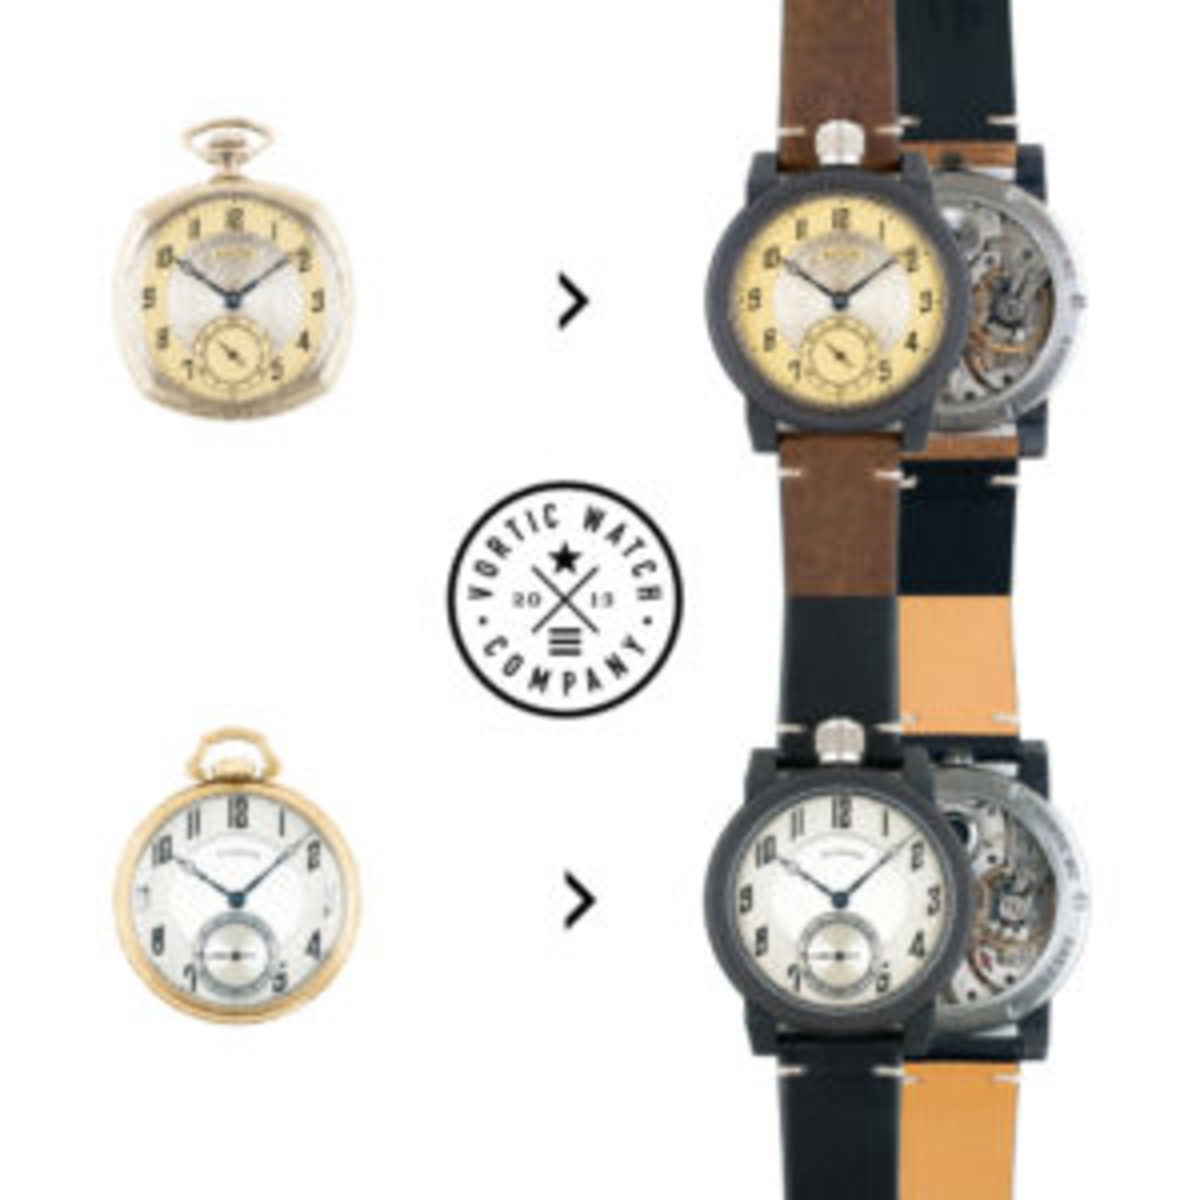 Heirloom pocket watches converted into luxury wrist watches.